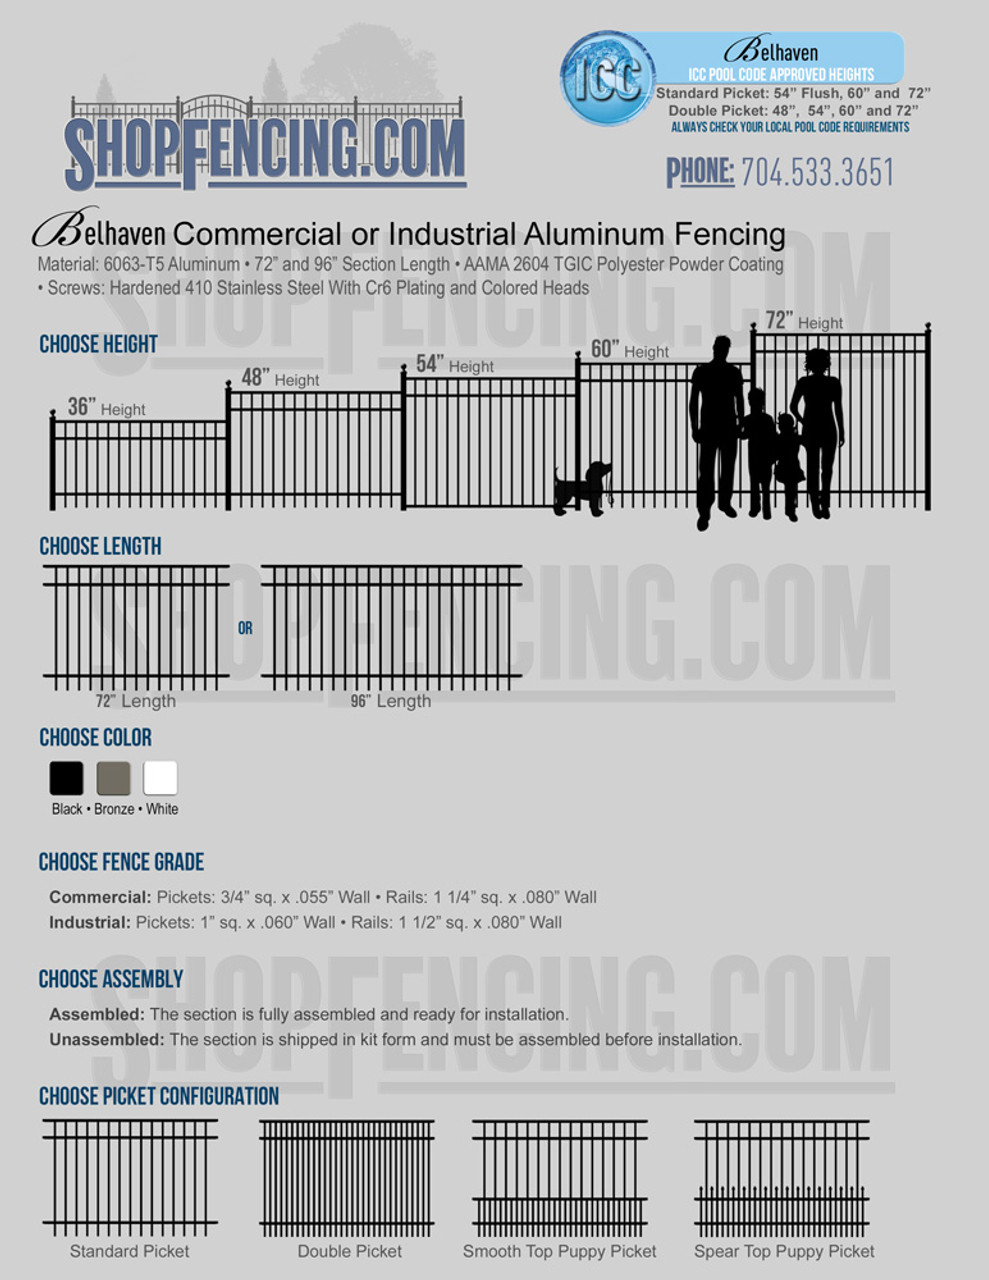 Commercial or Industrial Belhaven Aluminum Fencing From ShopFencing.com